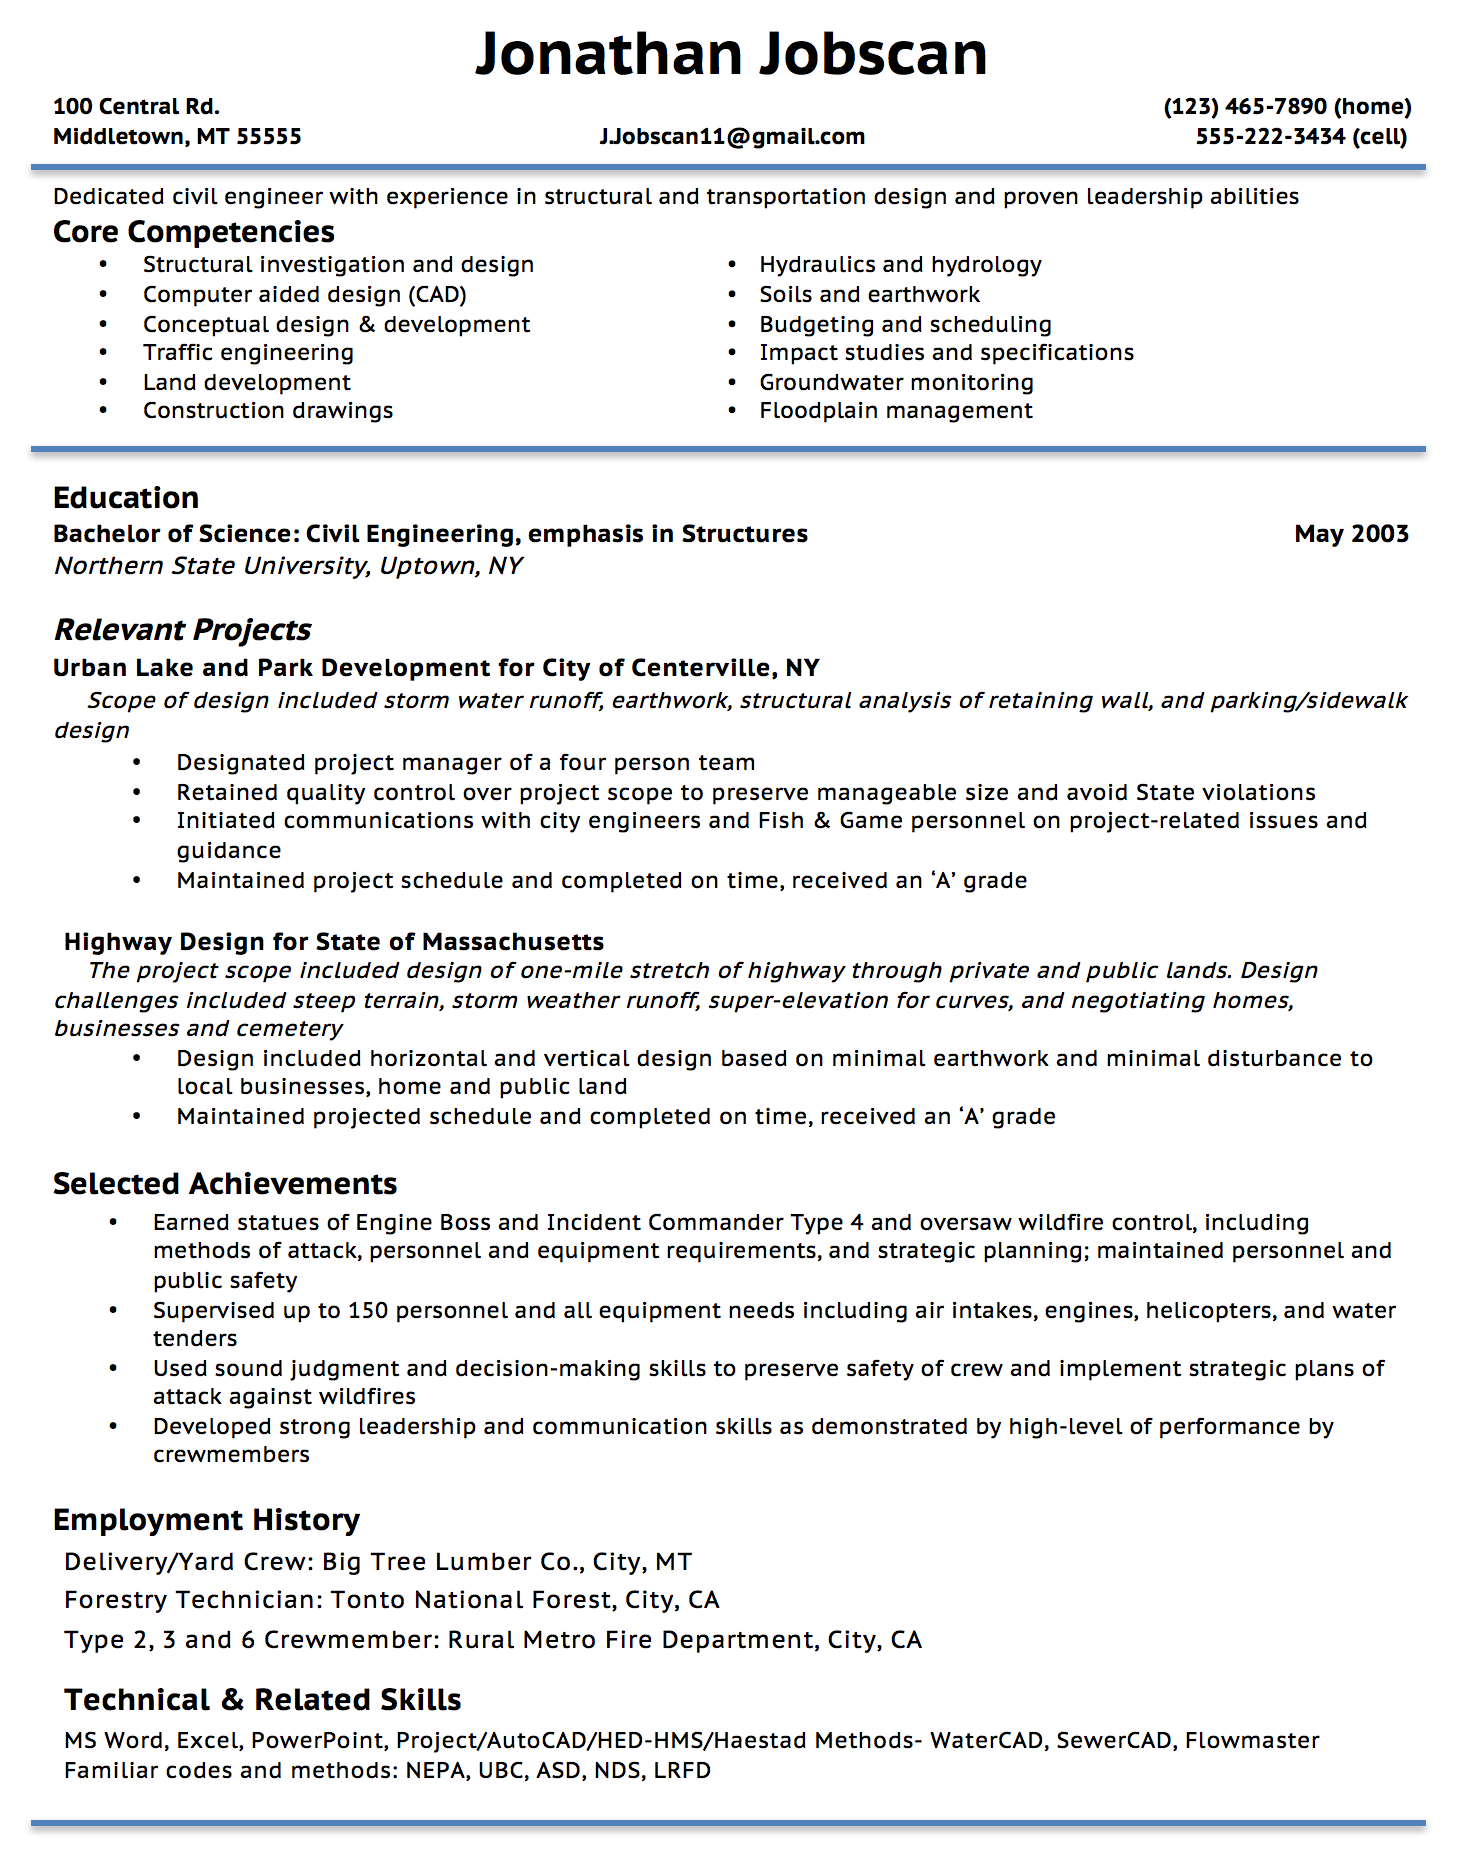 Opposenewapstandardsus  Seductive Resume Writing Guide  Jobscan With Remarkable Example Of A Functional Resume Format With Astounding Resume Templates For Nurses Also New Nursing Grad Resume In Addition How To Make Good Resume And Mechanic Resume Template As Well As Career Objective Examples For Resumes Additionally Blank Resume Format From Jobscanco With Opposenewapstandardsus  Remarkable Resume Writing Guide  Jobscan With Astounding Example Of A Functional Resume Format And Seductive Resume Templates For Nurses Also New Nursing Grad Resume In Addition How To Make Good Resume From Jobscanco